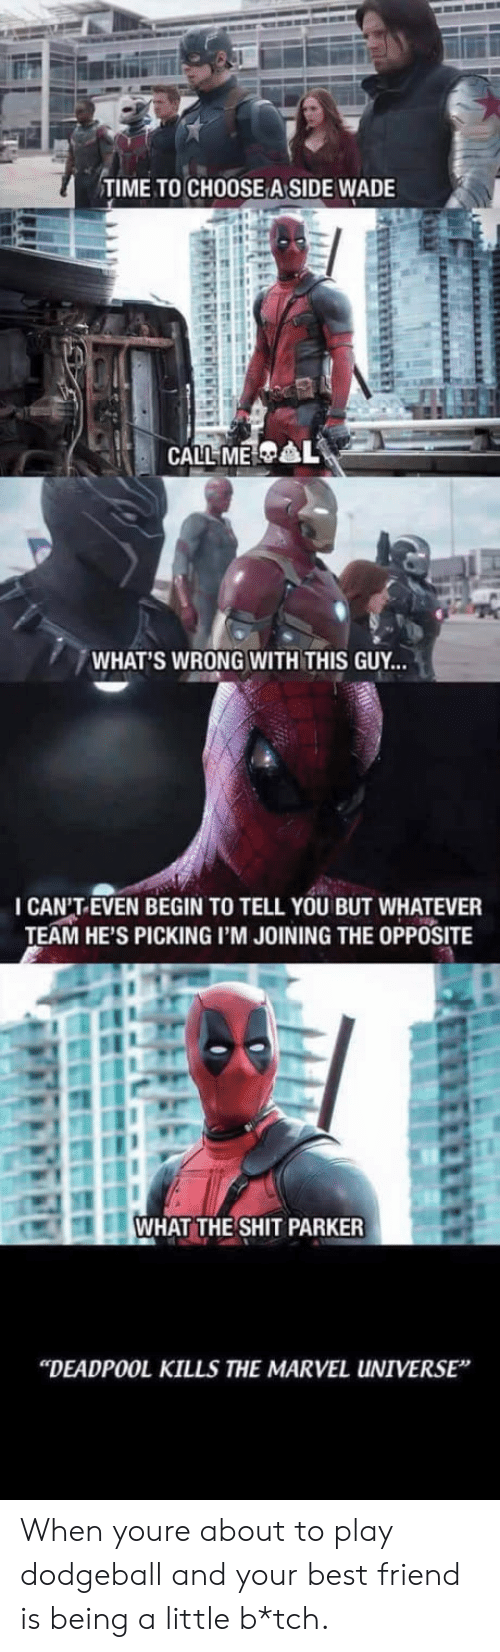 "Best Friend, Dodgeball, and Shit: TIME TO CHOOSE A SIDE WADE  WHAT'S WRONG WITH THIS GUY...  I CAN'T.EVEN BEGIN TO TELL YOU BUT WHATEVER  TEAM HE'S PICKING I'M JOINING THE OPPOSITE  WHAT THE SHIT PARKER  ""DEADPOOL KILLS THE MARVEL UNIVERSE When youre about to play dodgeball and your best friend is being a little b*tch."